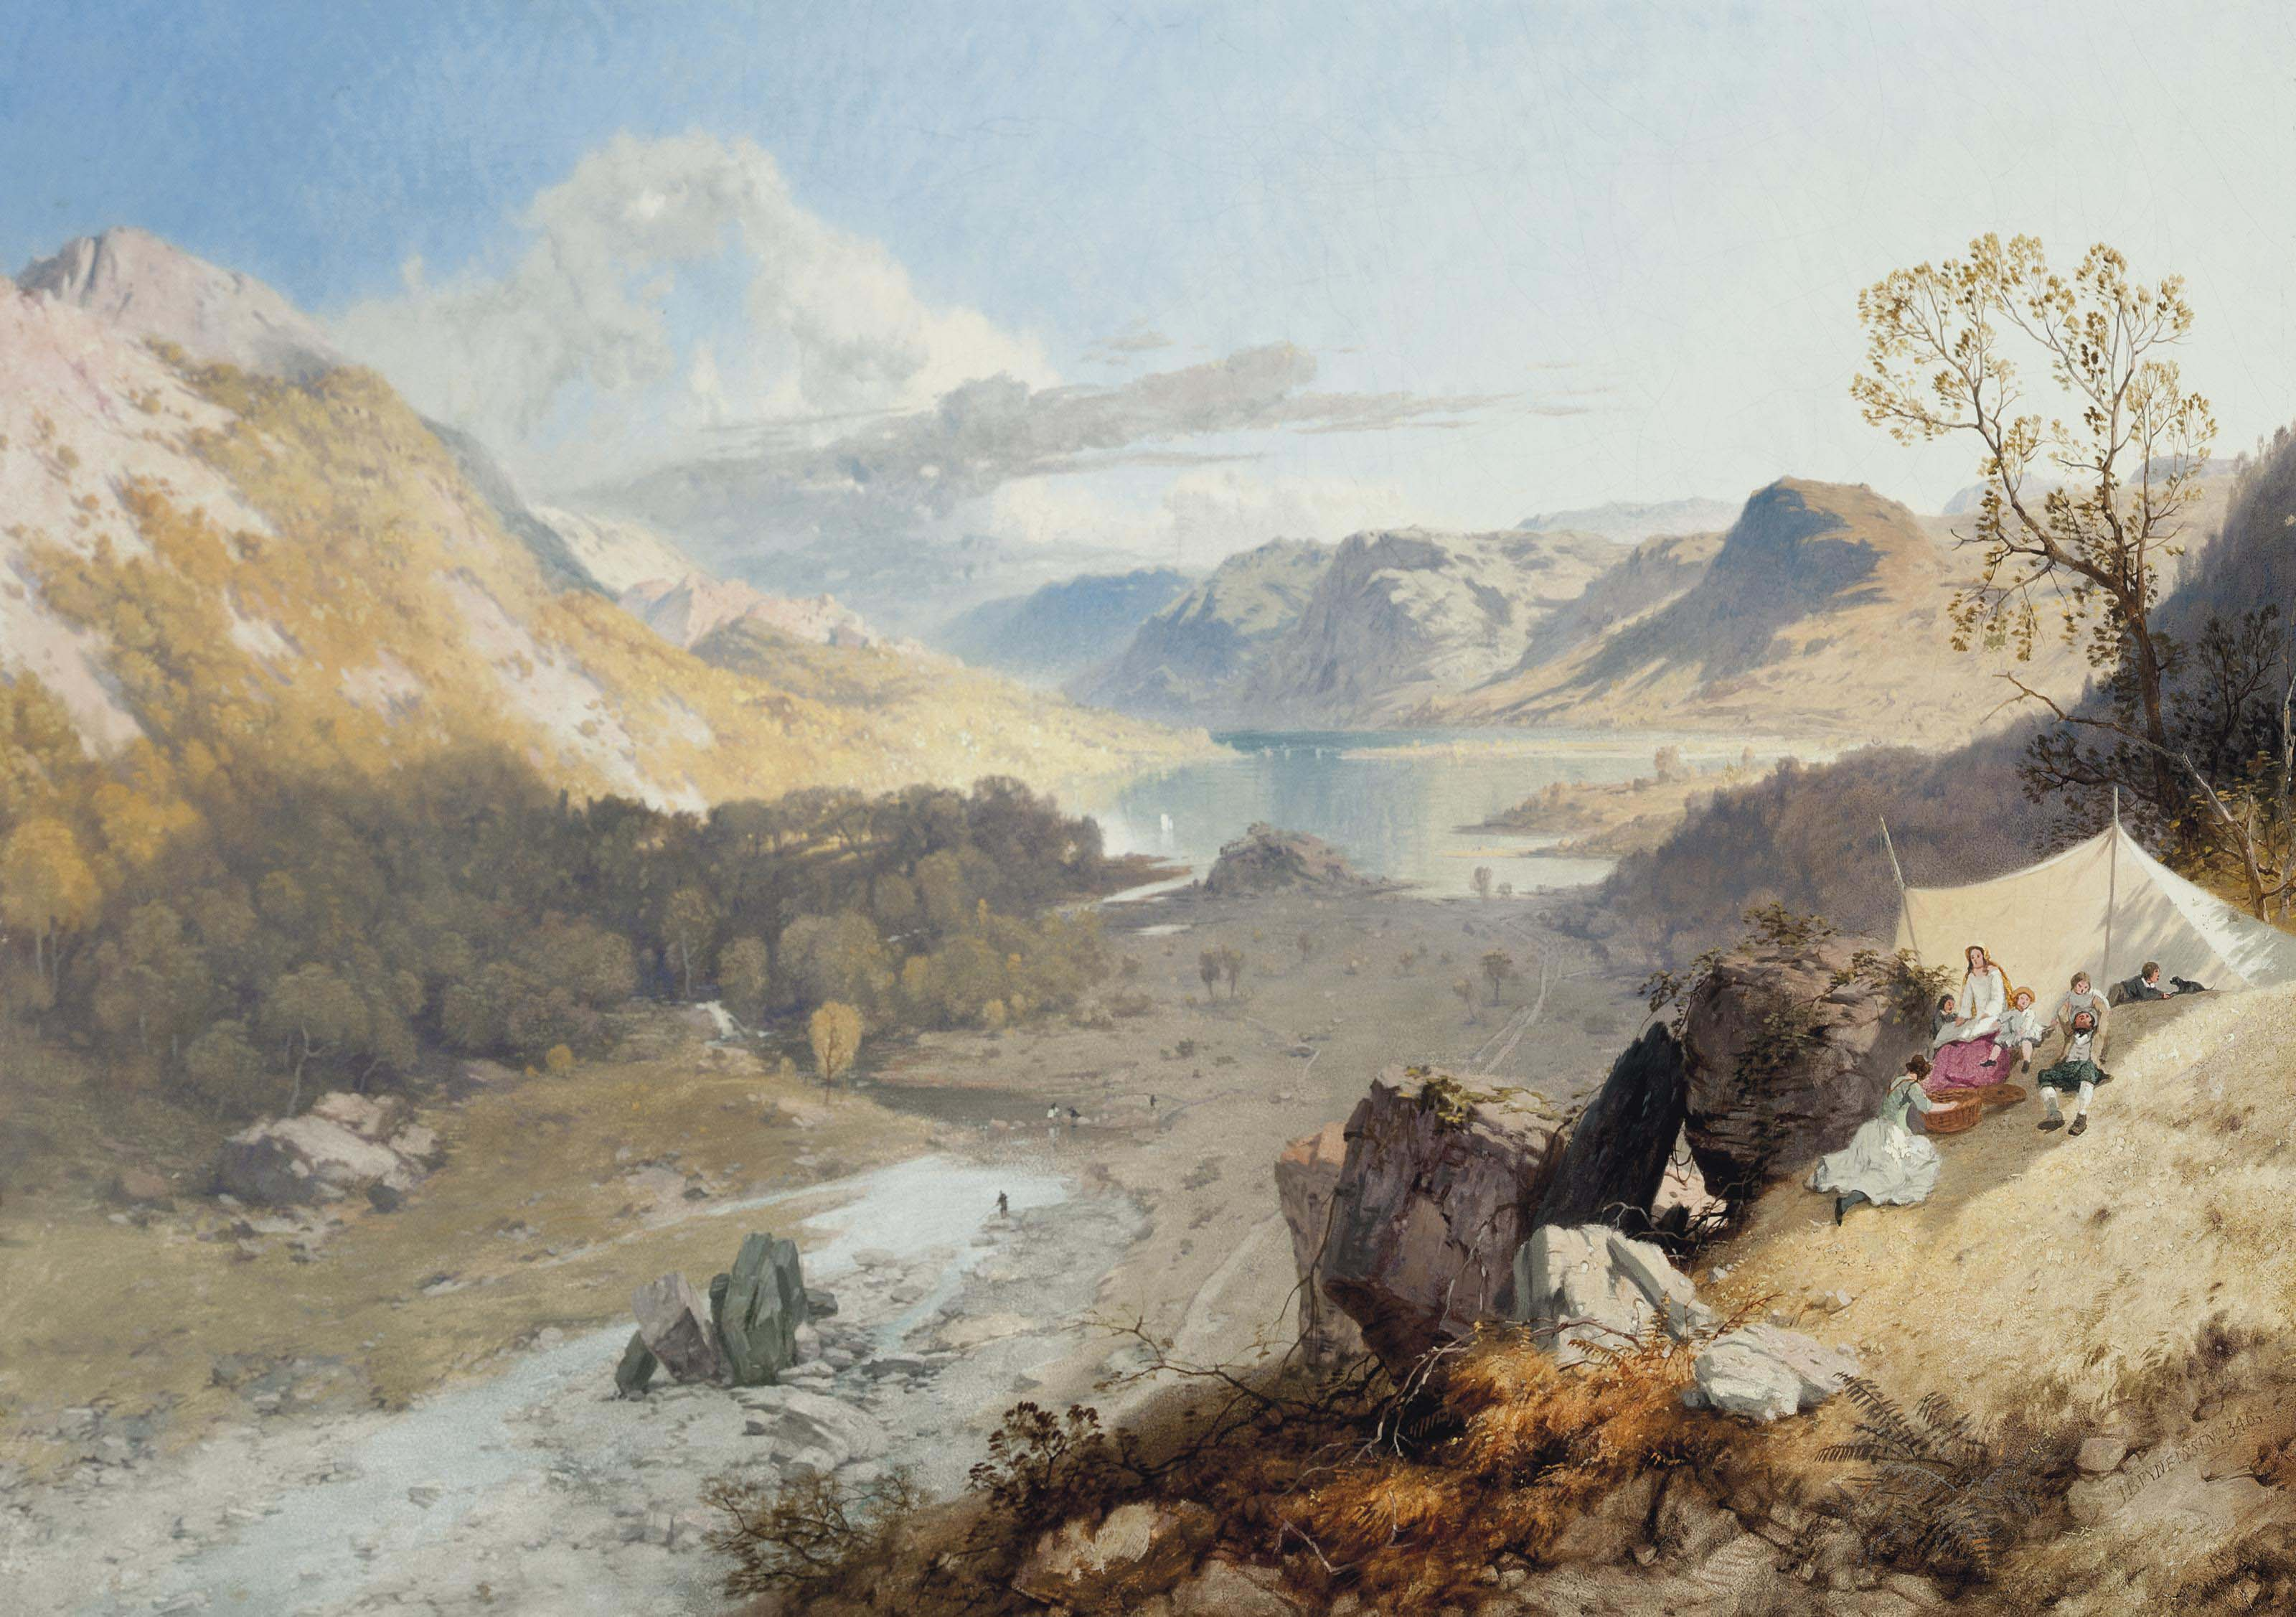 Picnic by Wythburn water, Thirlmere valley